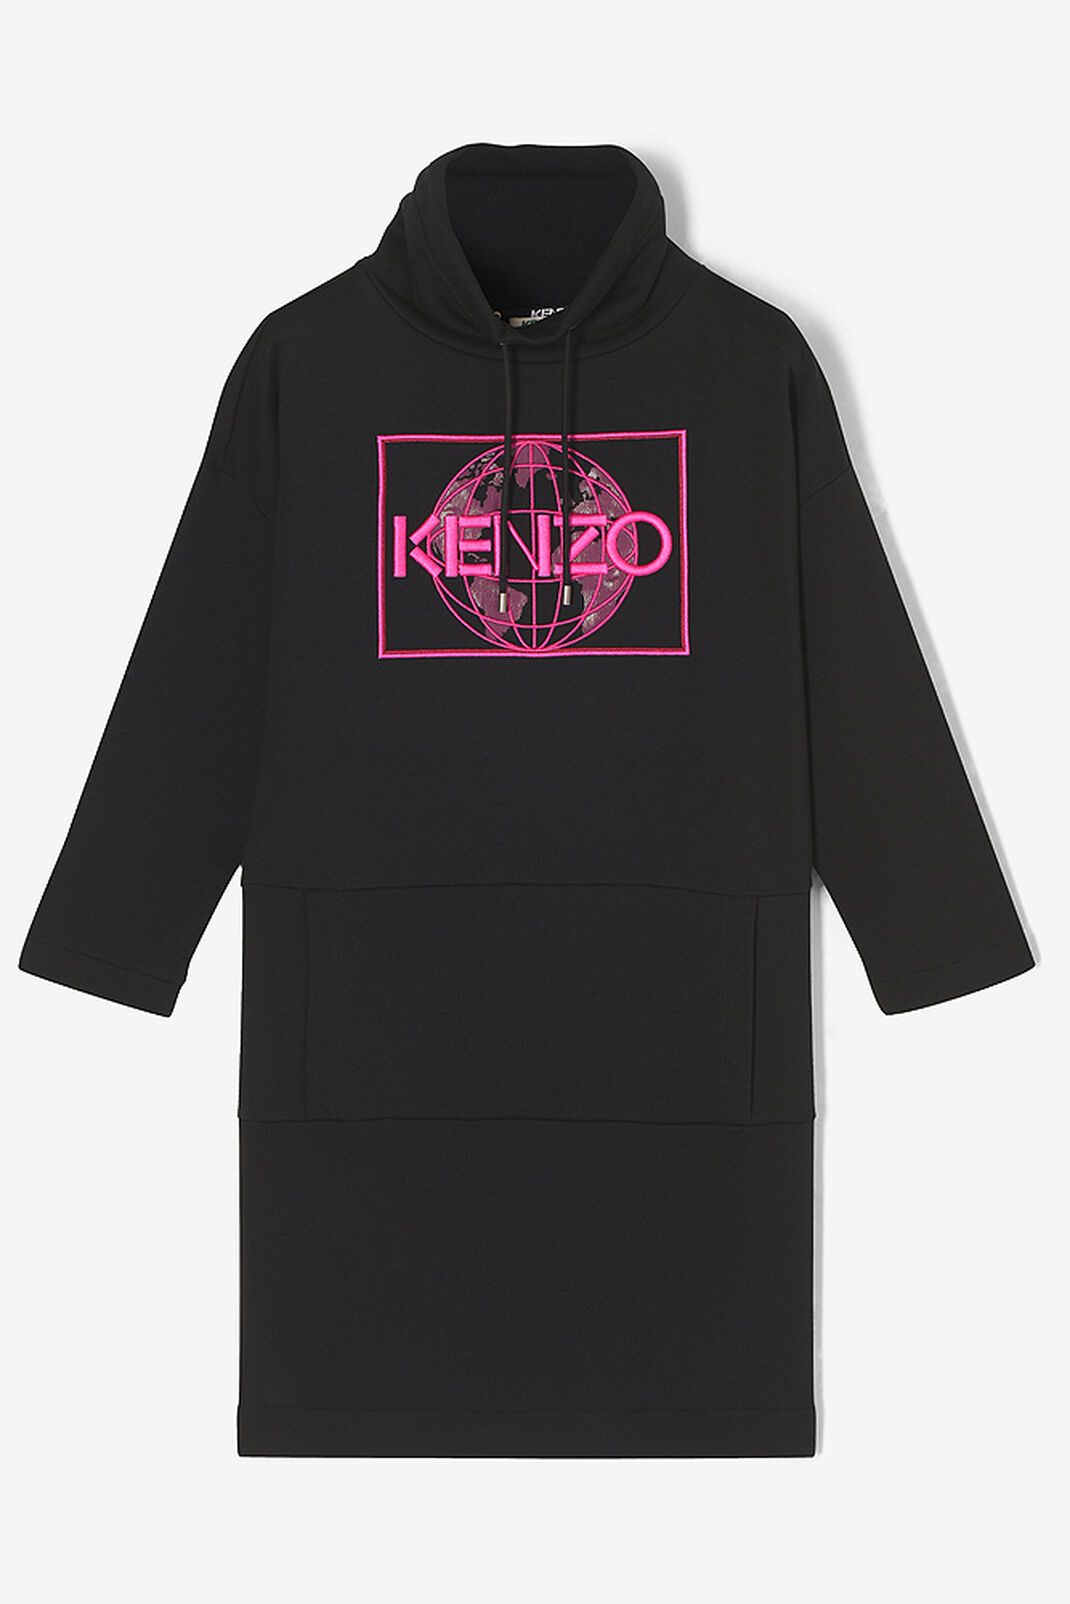 BLACK KENZO World Sweatshirt Dress for women